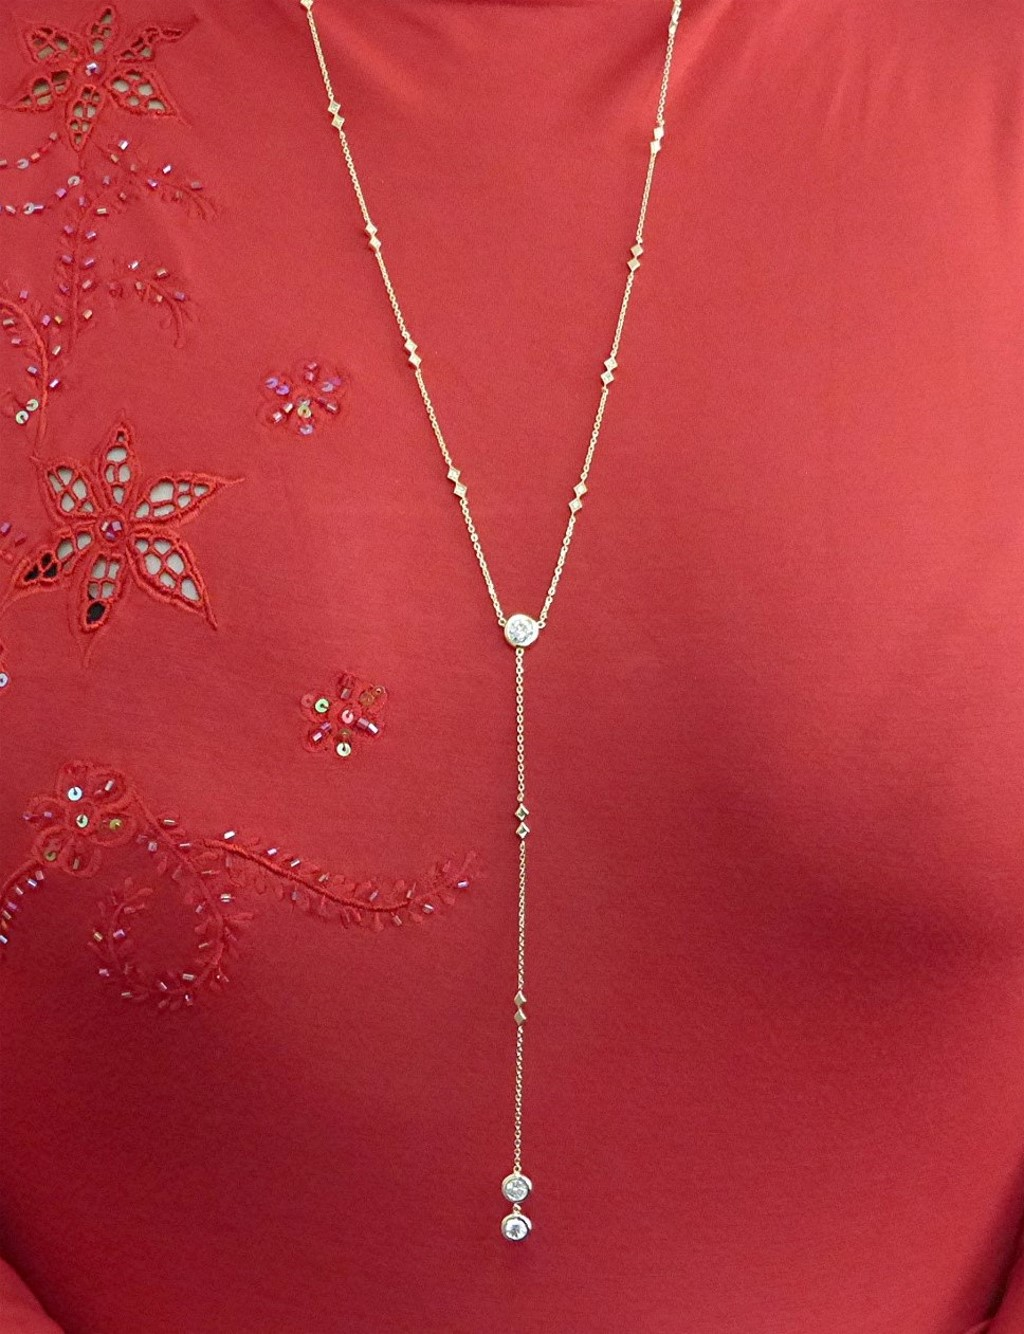 14k gold and diamond Laurent necklace